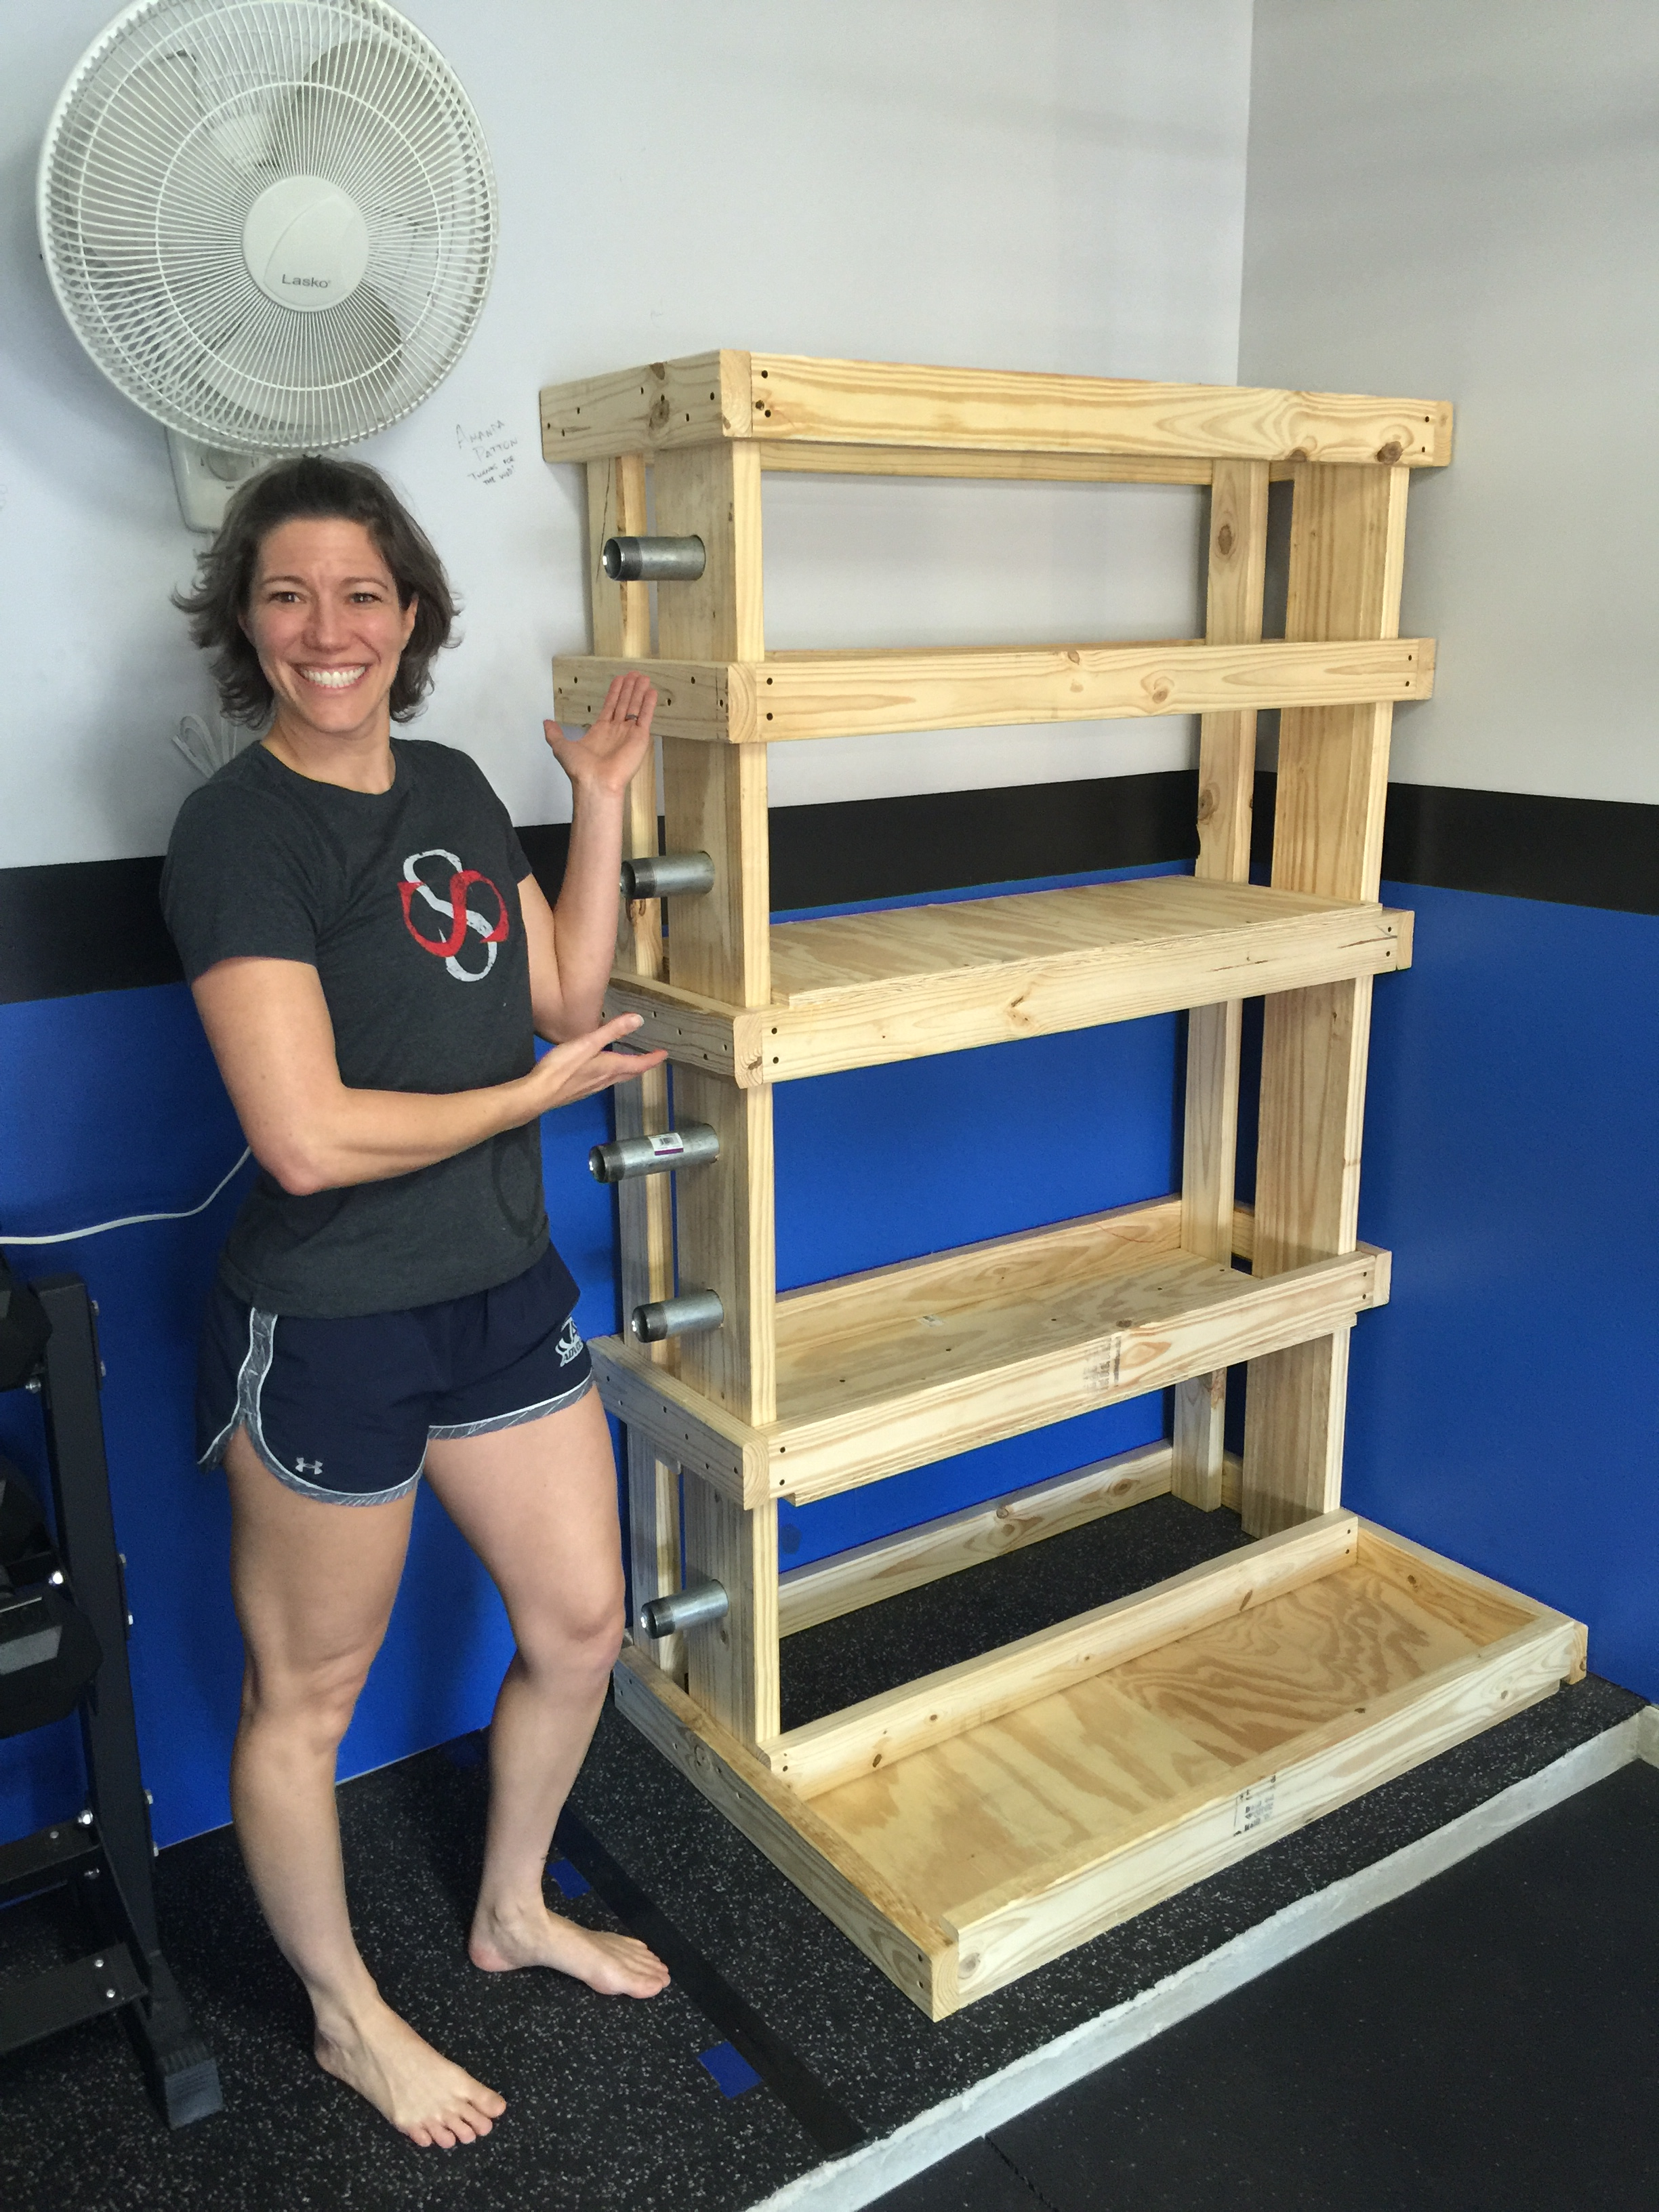 Diy garage gym storage projects